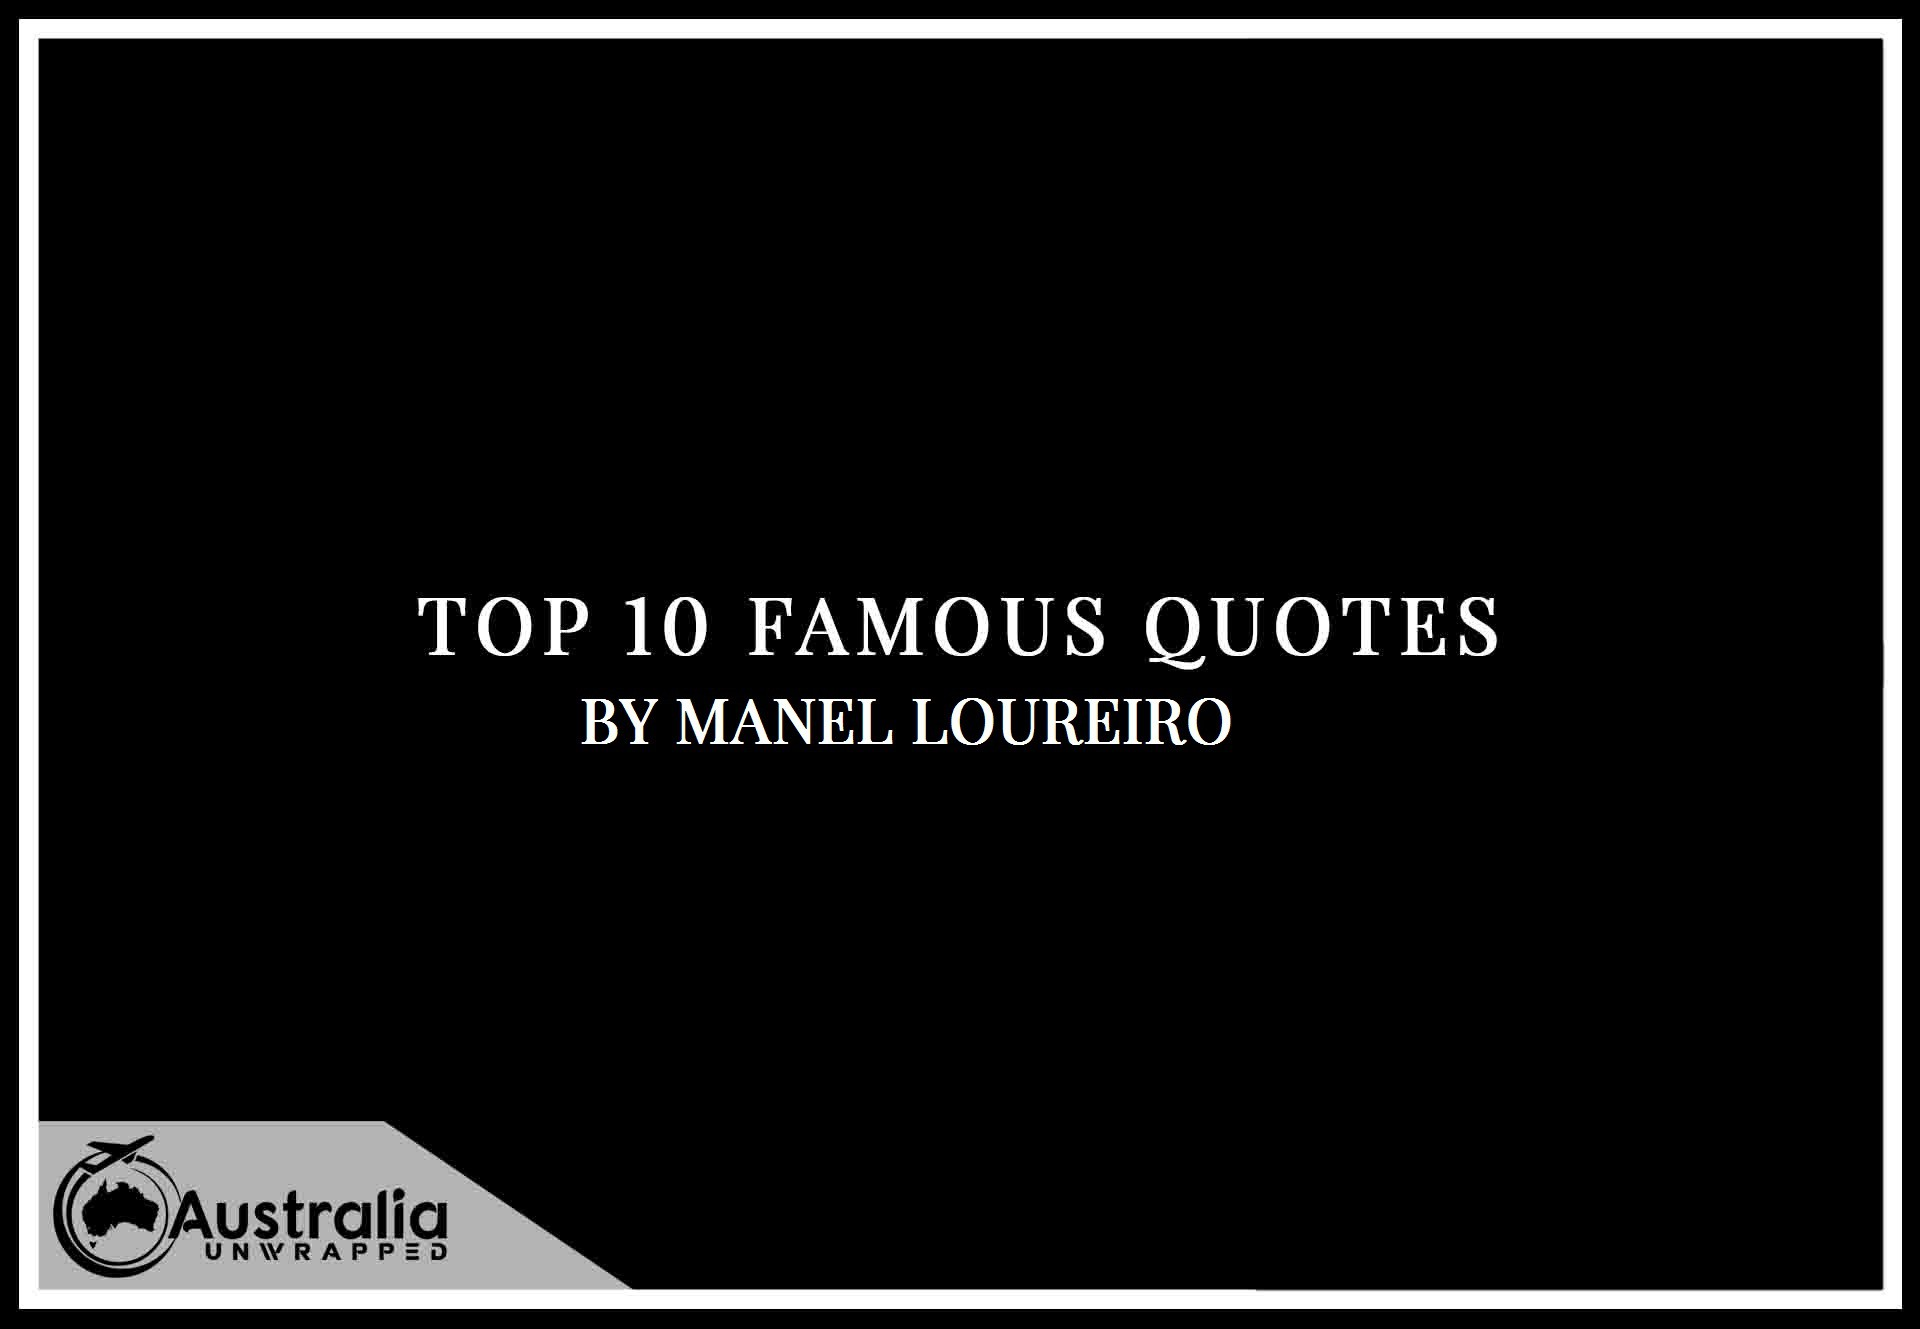 Manel Loureiro's Top 10 Popular and Famous Quotes